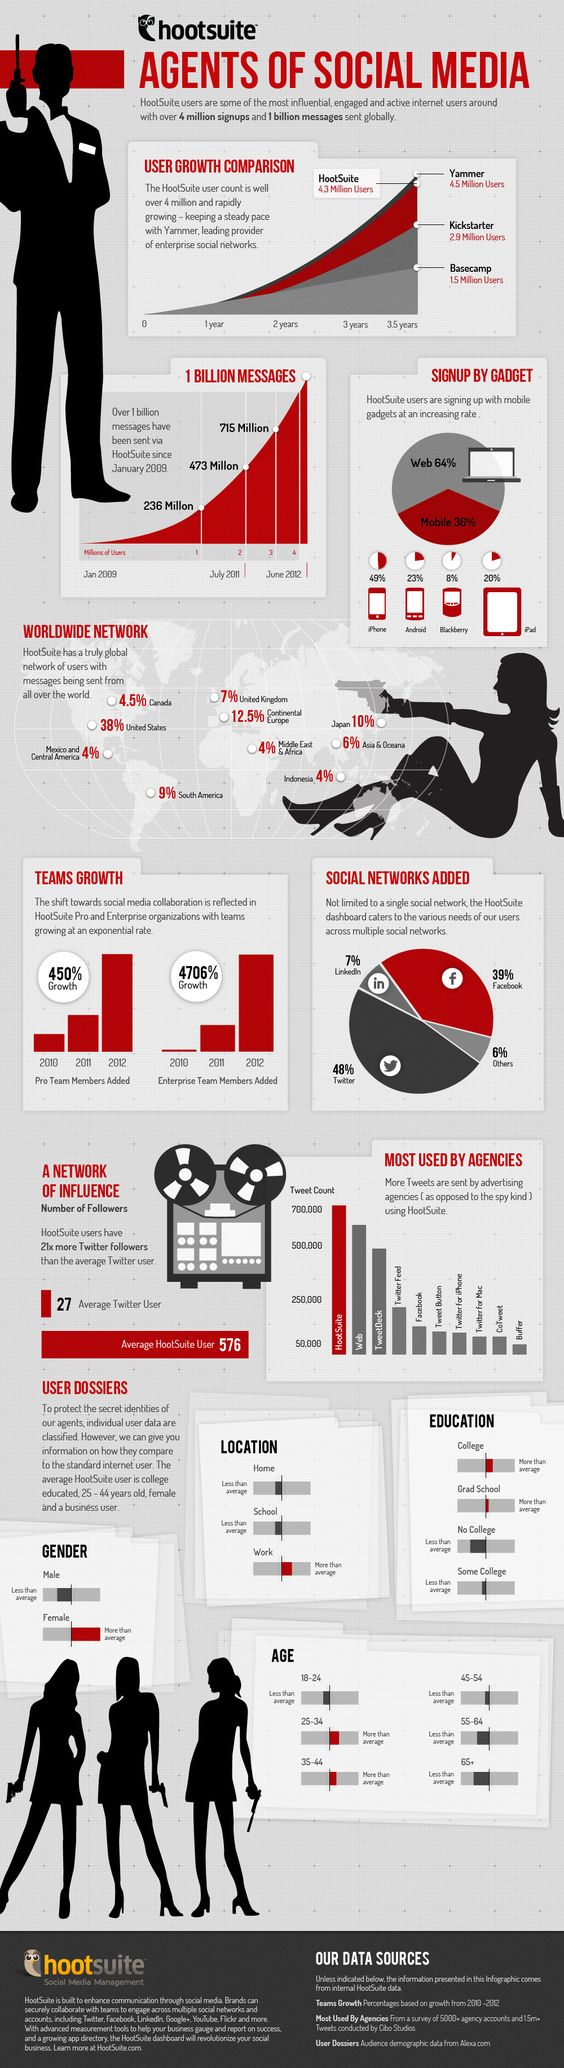 Infographic Showing HootSuite - The Agents Of Social Media #socialmedia